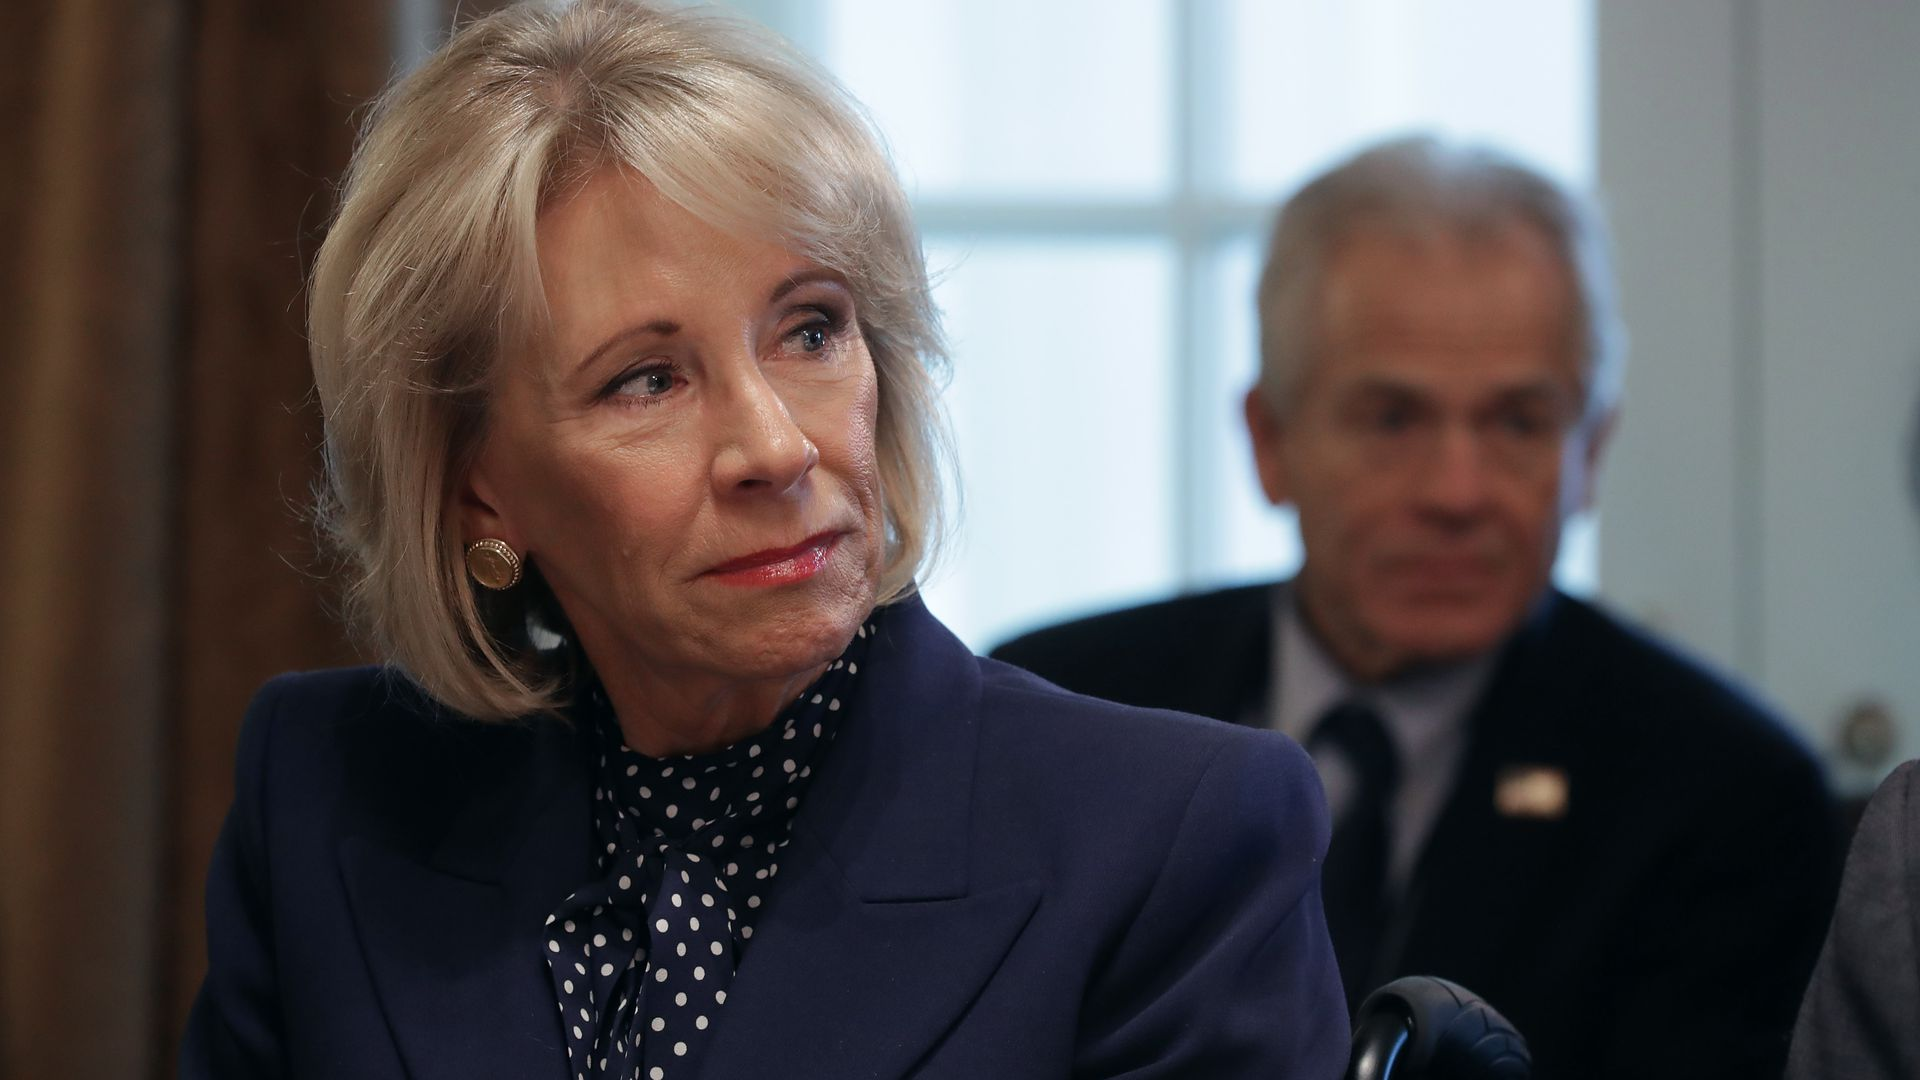 Education Secretary Betsy DeVos sits in a blue suit in a cabinet meeting.